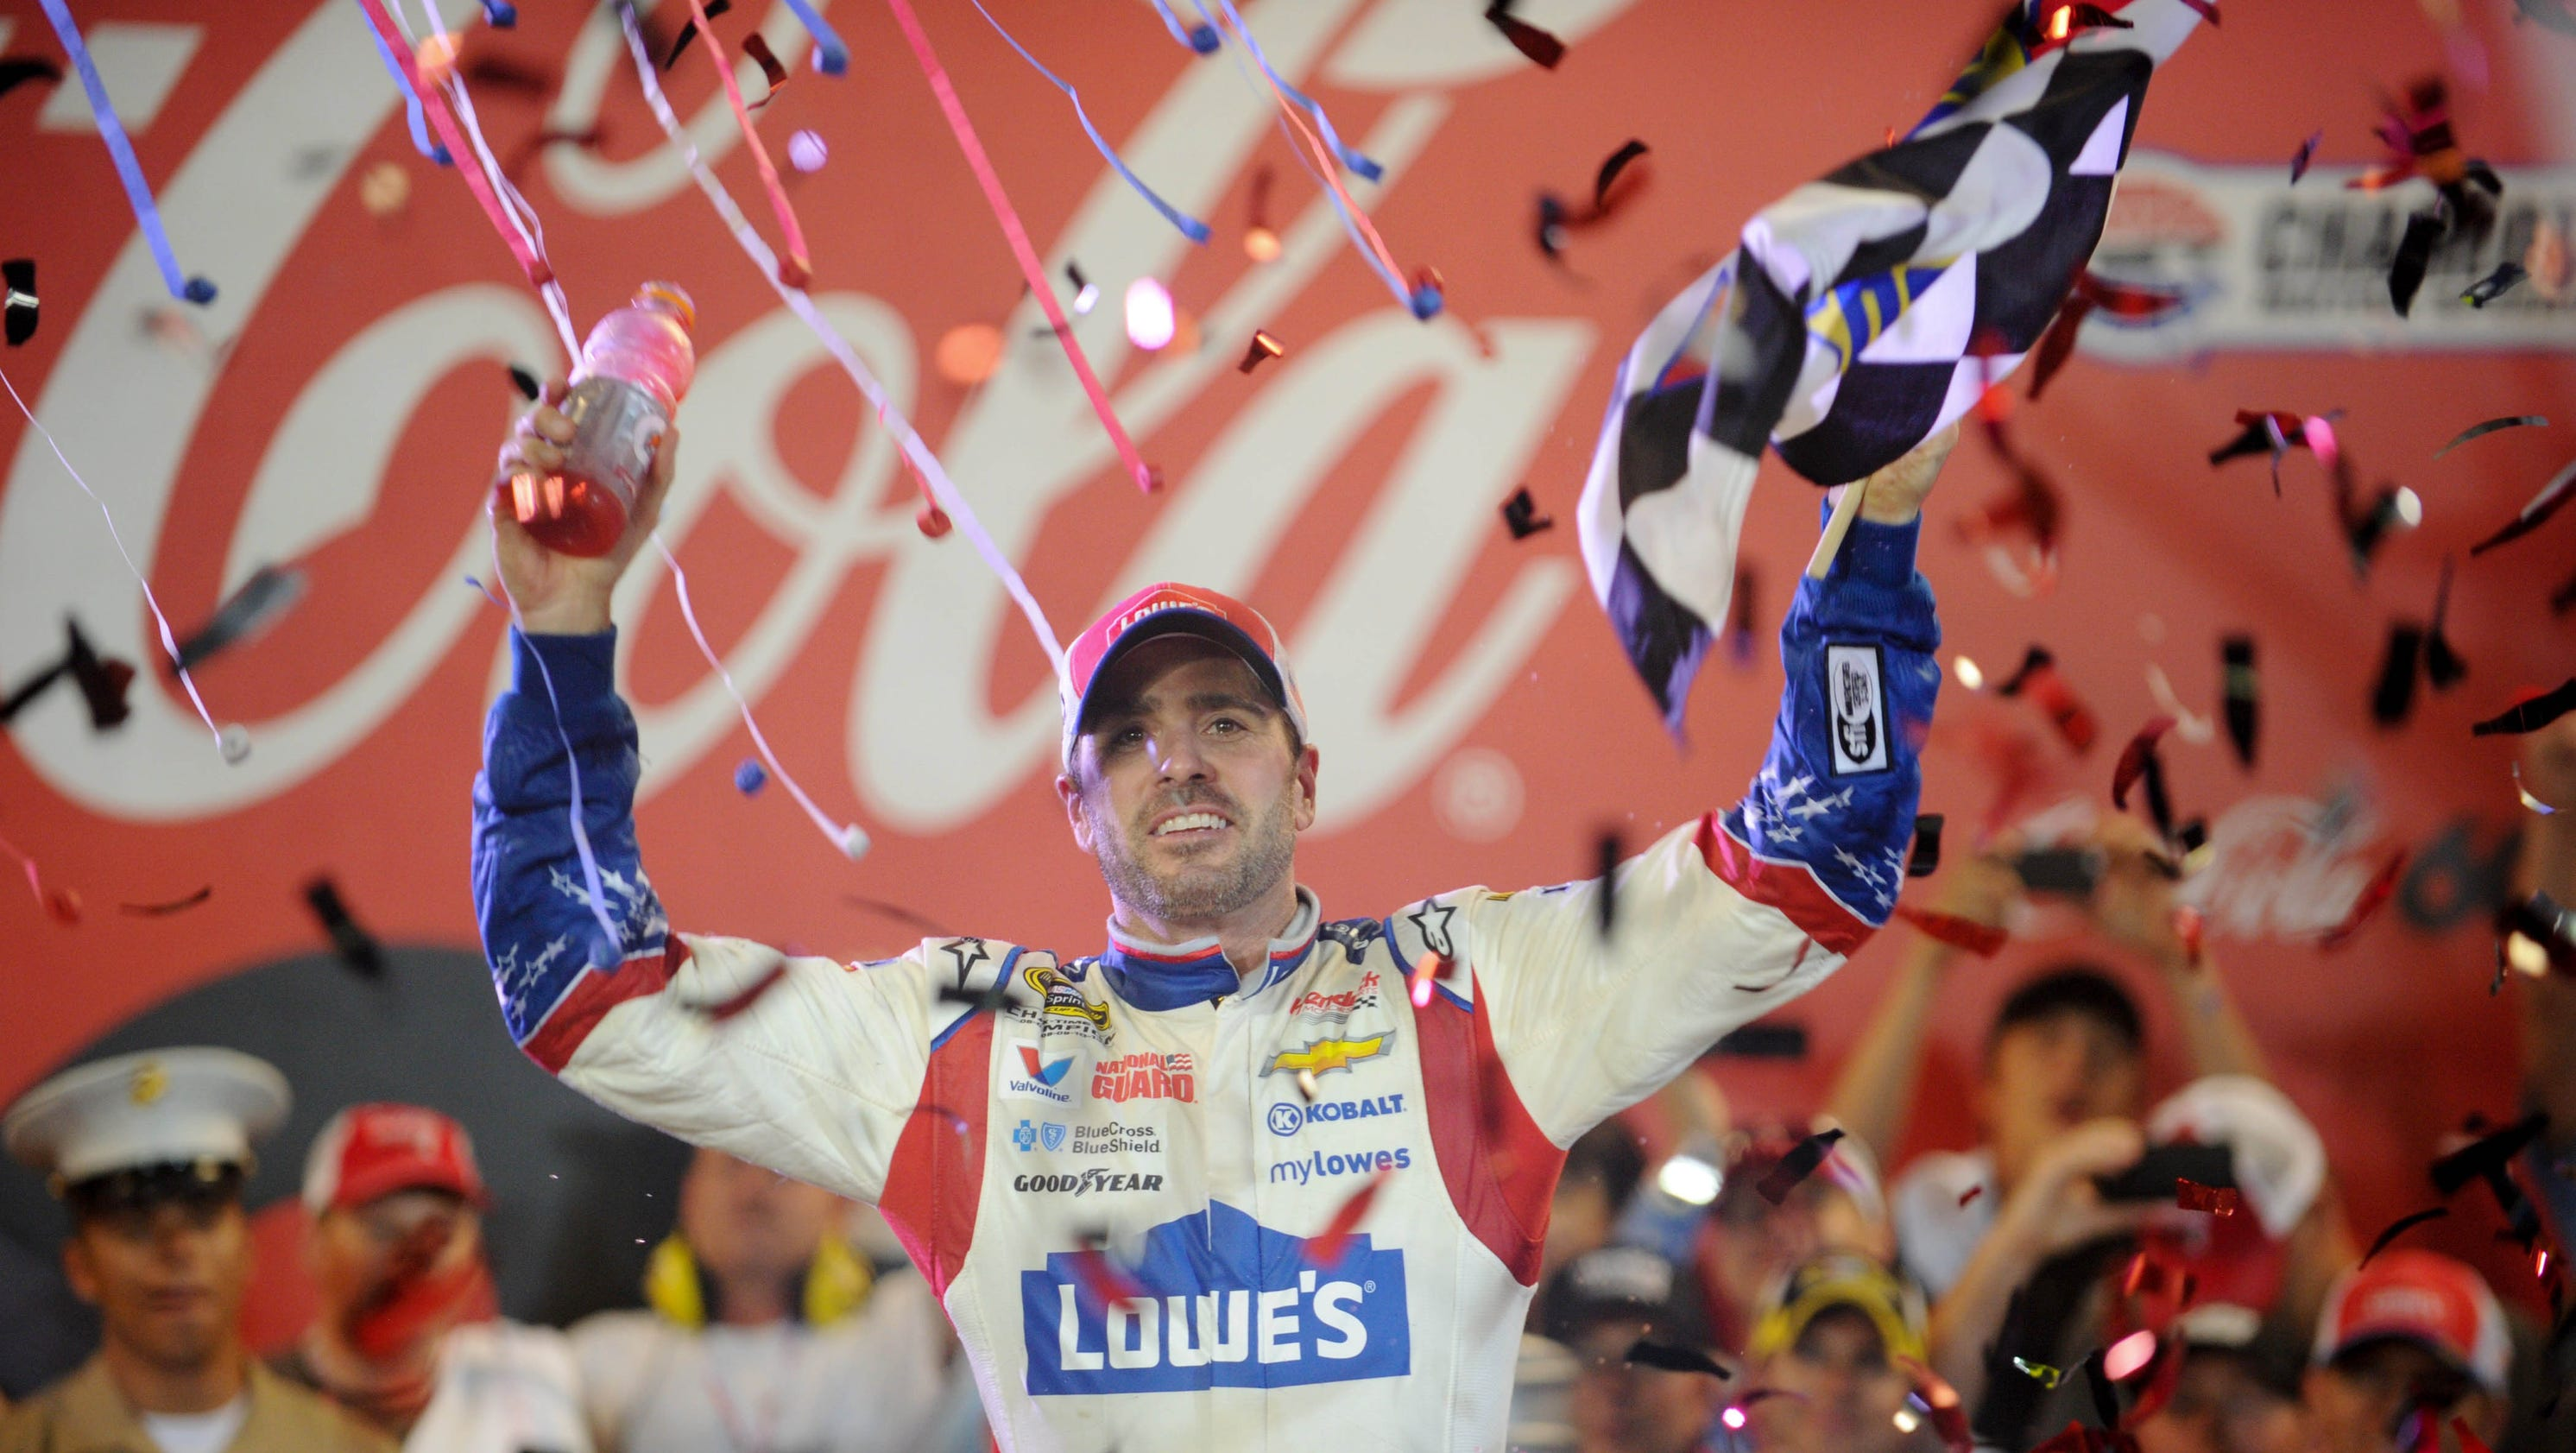 Jimmie Johnson gets first win of season at Coke 600